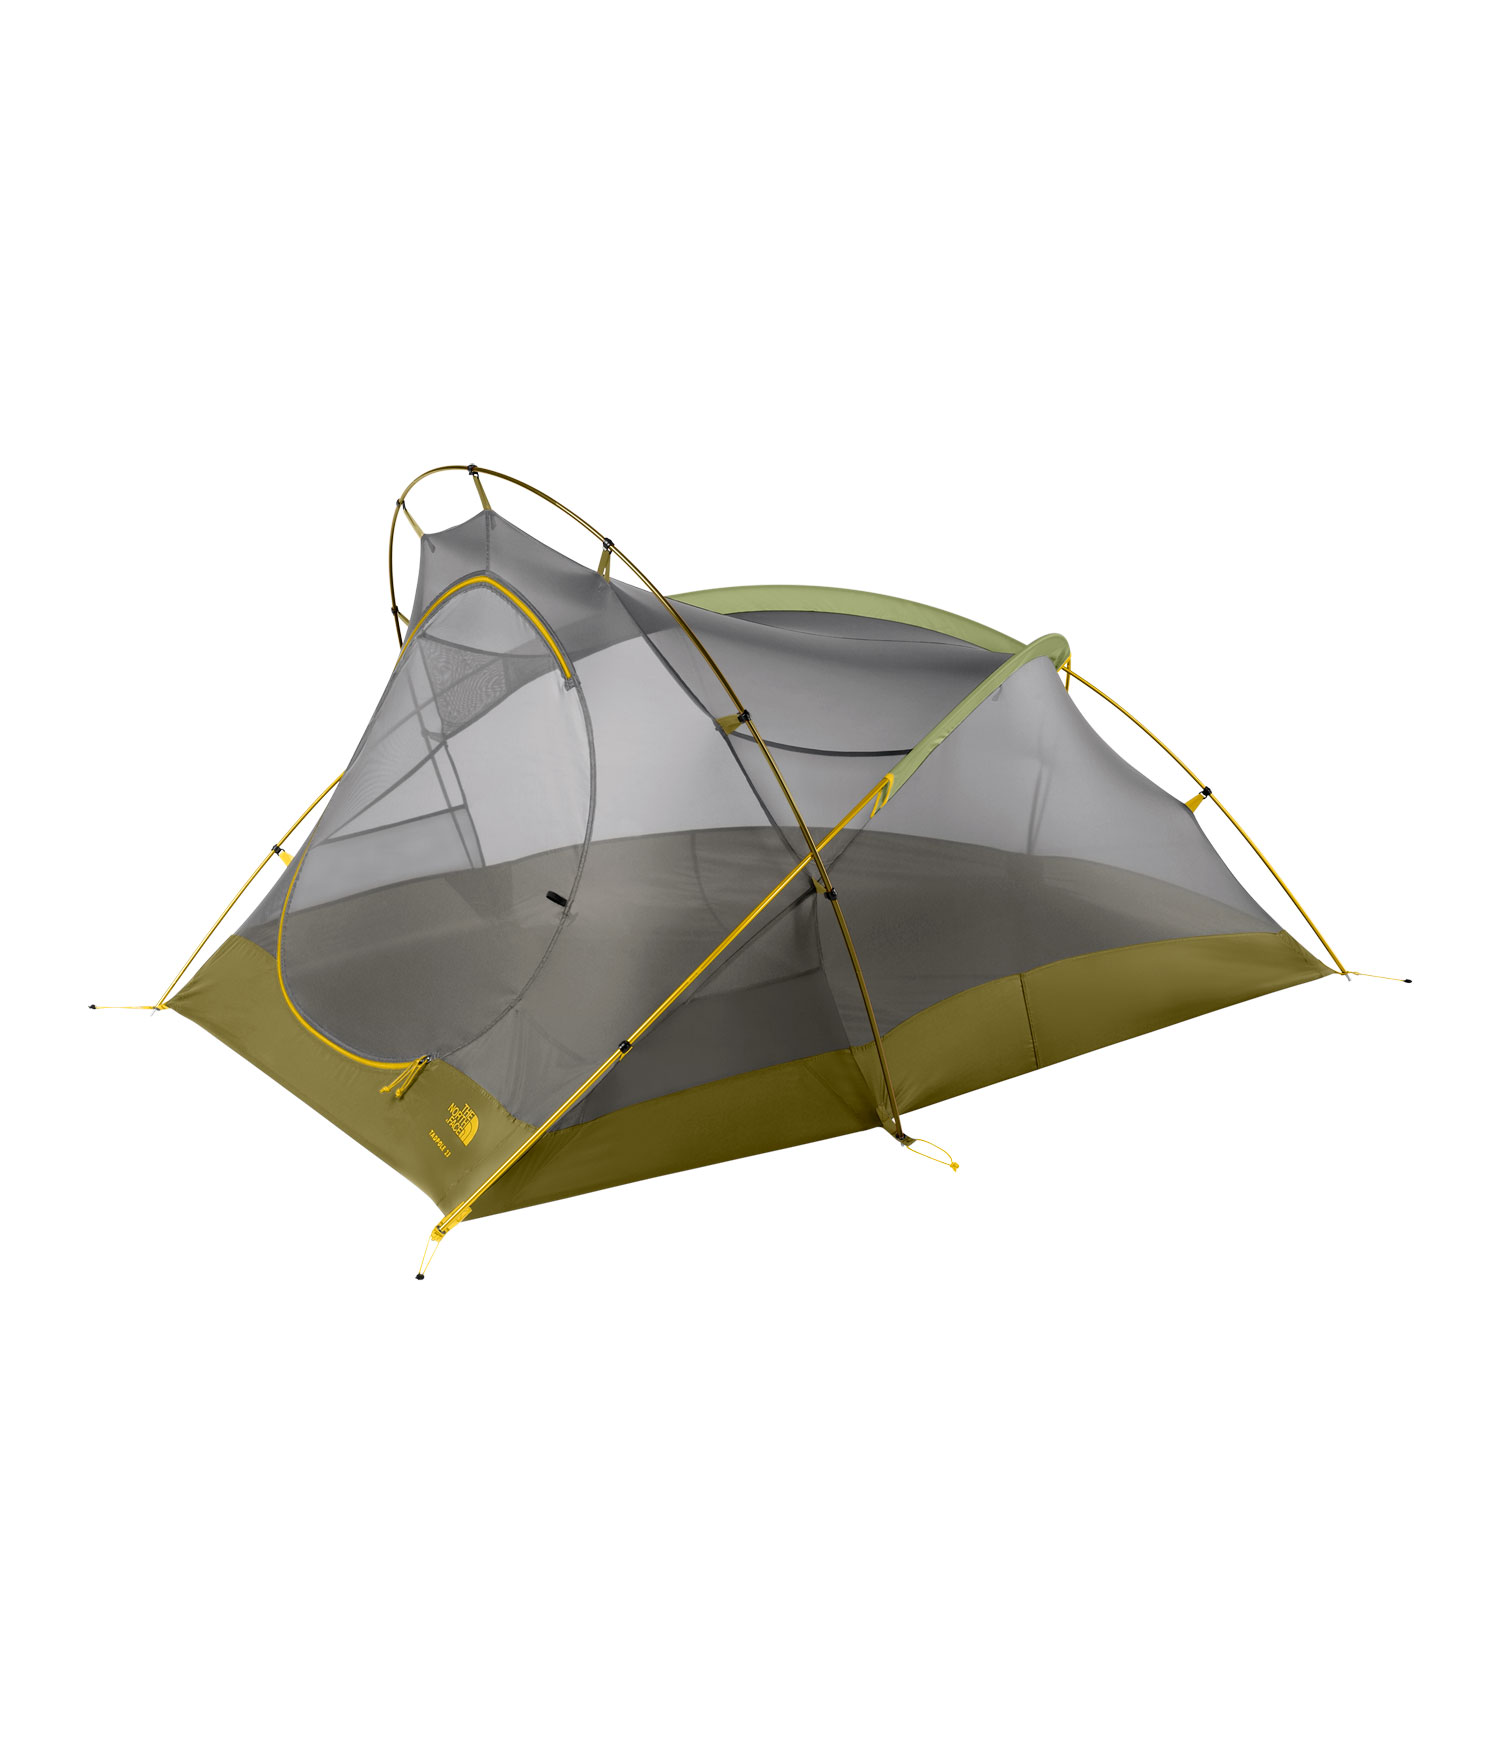 "Camp and Hike A venerable classic, as light and user-friendly as ever, but with improved ventilation.Key Features of The North Face Tadpole 23 Bx 2 Person Tent Bamboo Green: Lightweight, easy to use clip system Comprehensive color-coded pitch Fully taped nylon bucket floor Convenient overhead pockets Abundant gear loops Compatible with triangle gear loft Durable steel stakes Capacity: 2 Trail weight: 4lbs 10oz Floor area: 26.2 ft2 Vestibule area: 9 ft2 Fabric: Fly: 75D 190T polyester taffeta, 2.3 oz/yd2, 1500mm PU coating, water-resistant finish/Canopy: 40D nylon ""no-see-um"" mesh/Floor: 70D190T nylon taffeta, 2.4 oz/yd2 , 5,000mm PU coating, water-resistant finish - $154.95"